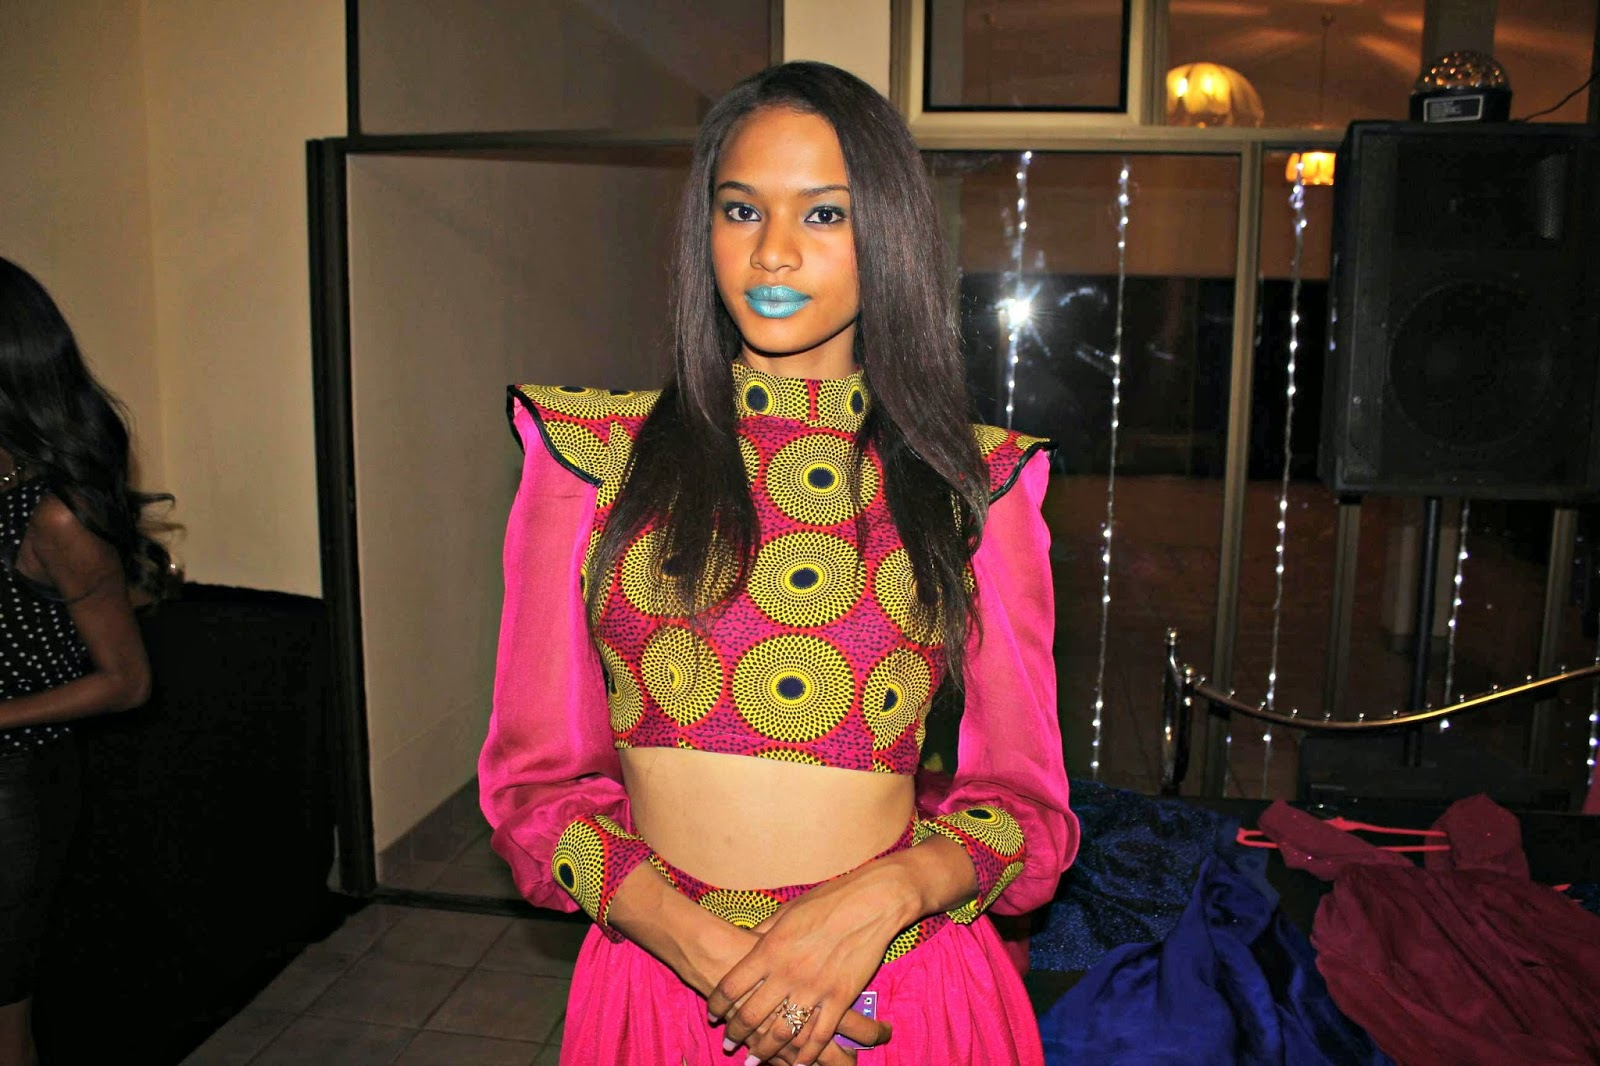 Shida, Vakwetu, Namibian Fashion and Industry Reception